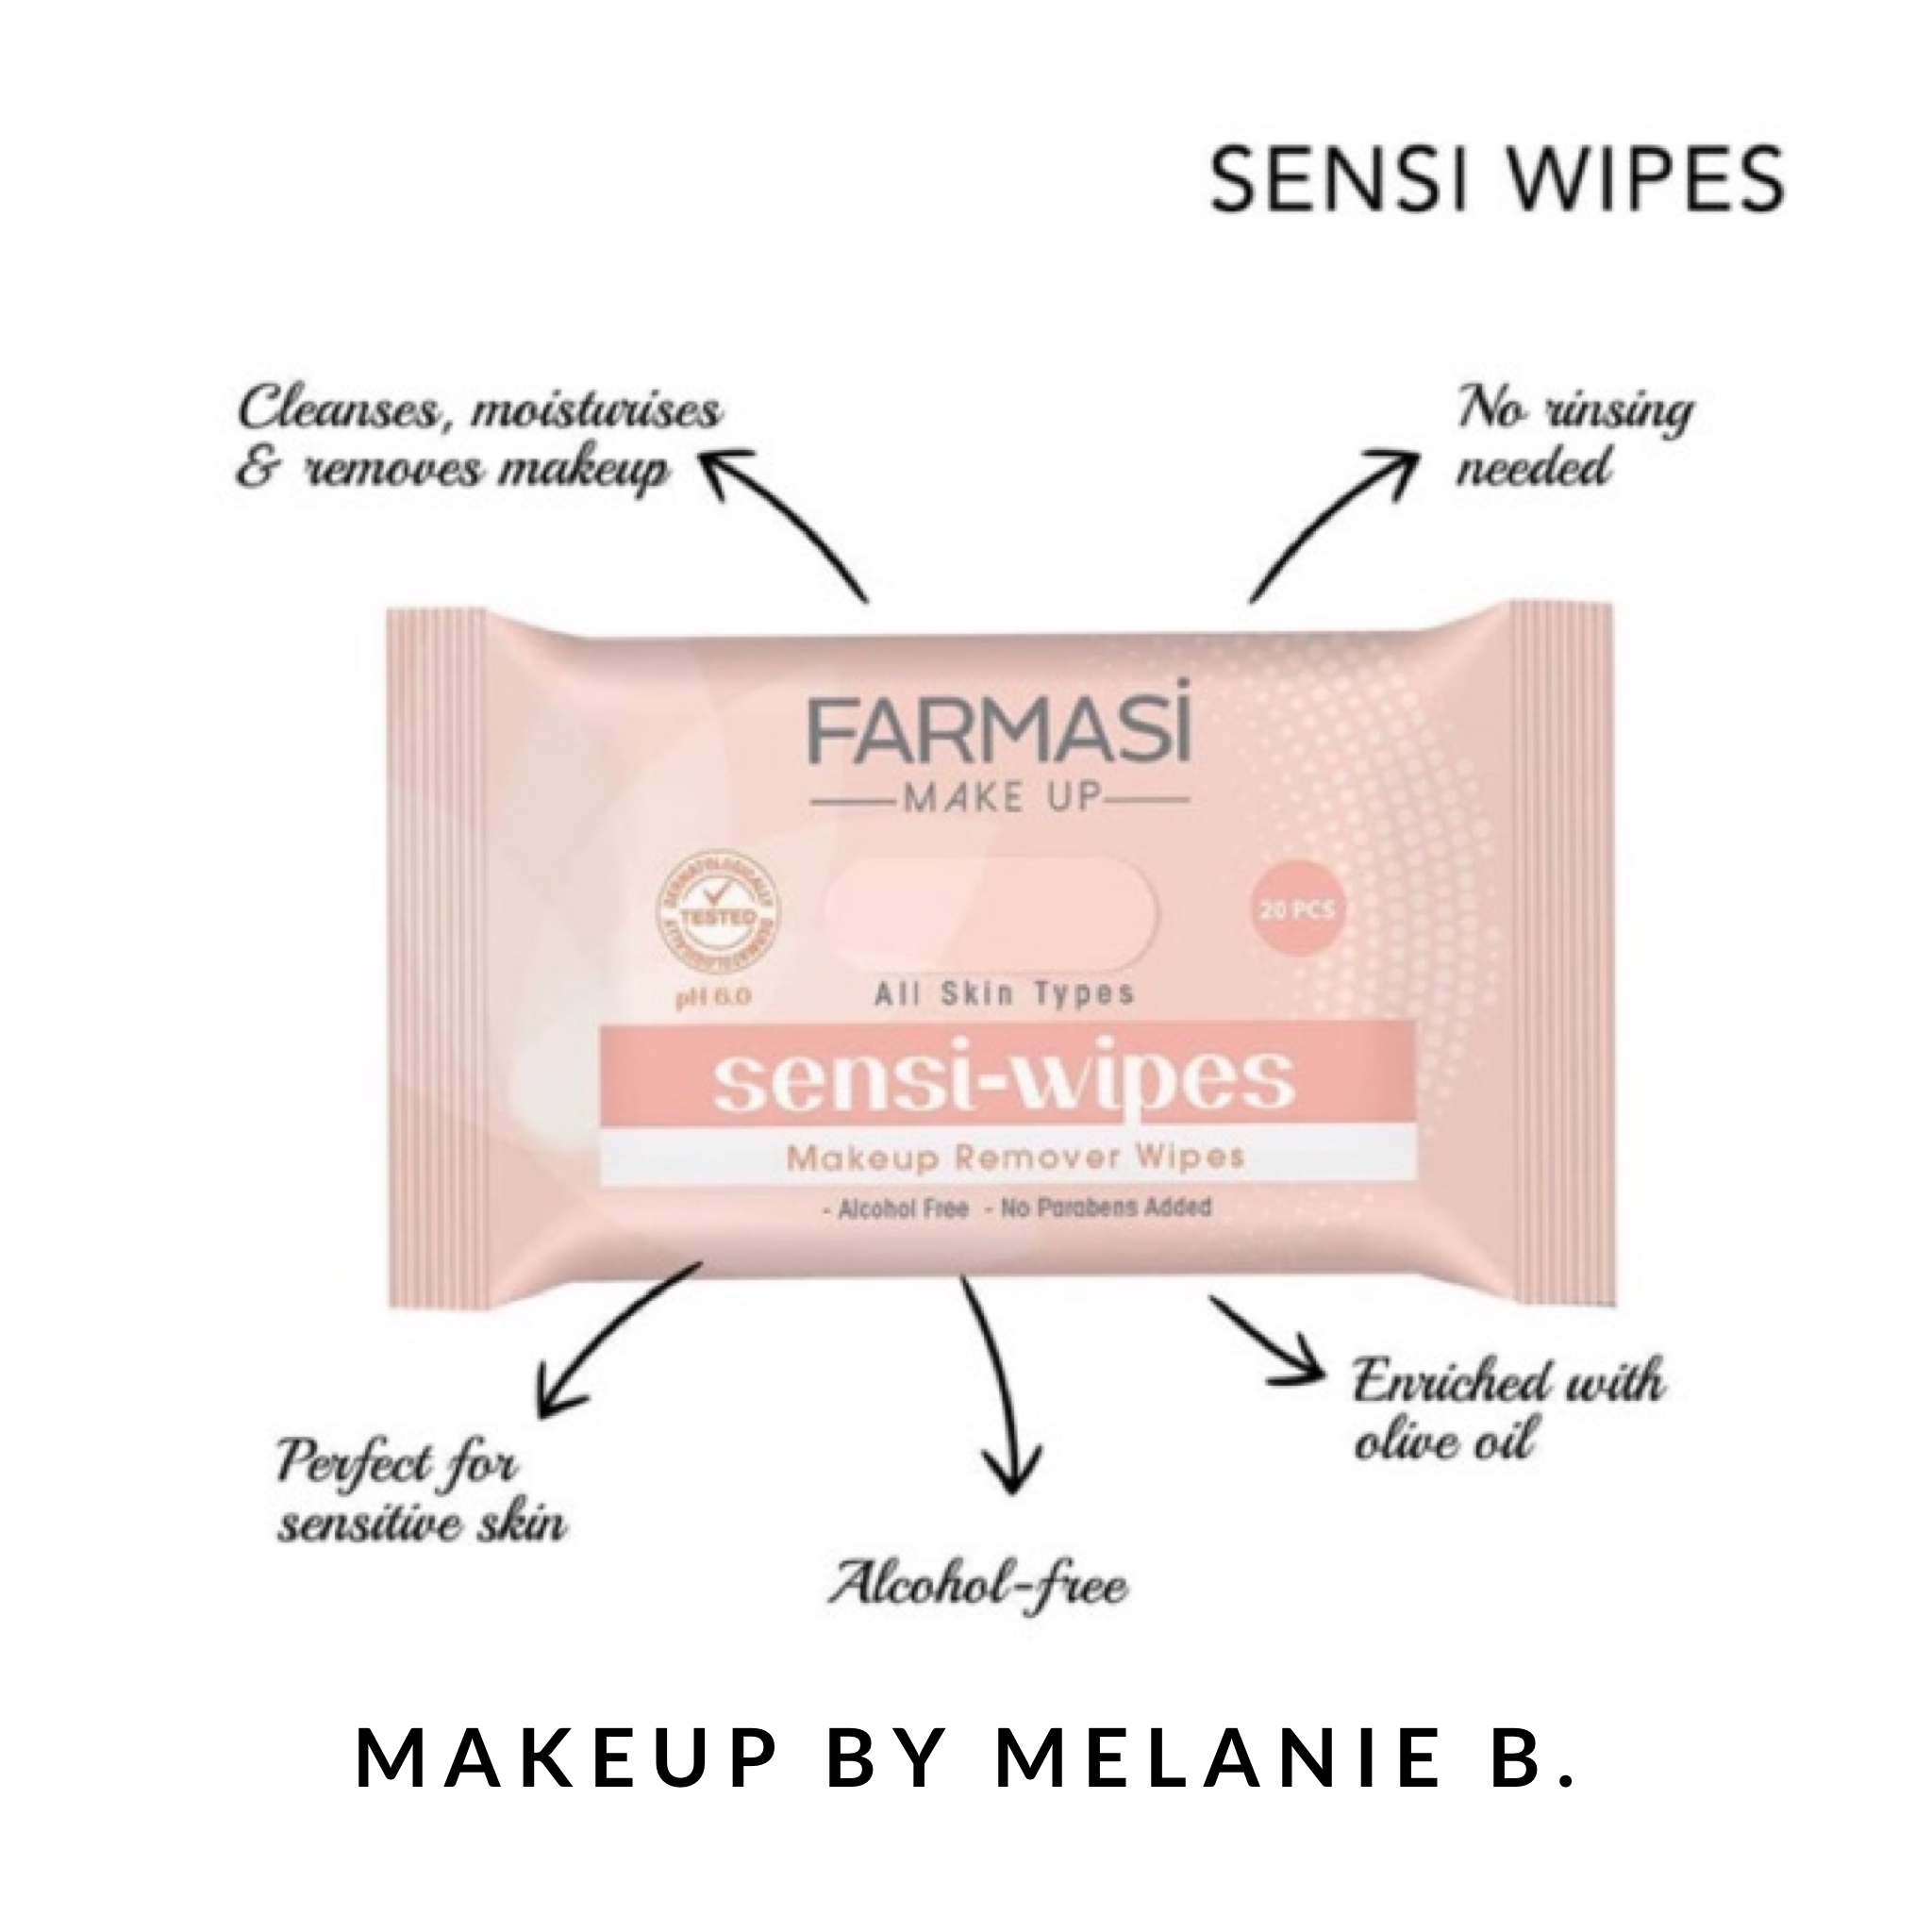 With the Farmasi SensiWipes Makeup Cleaning Wipes, you